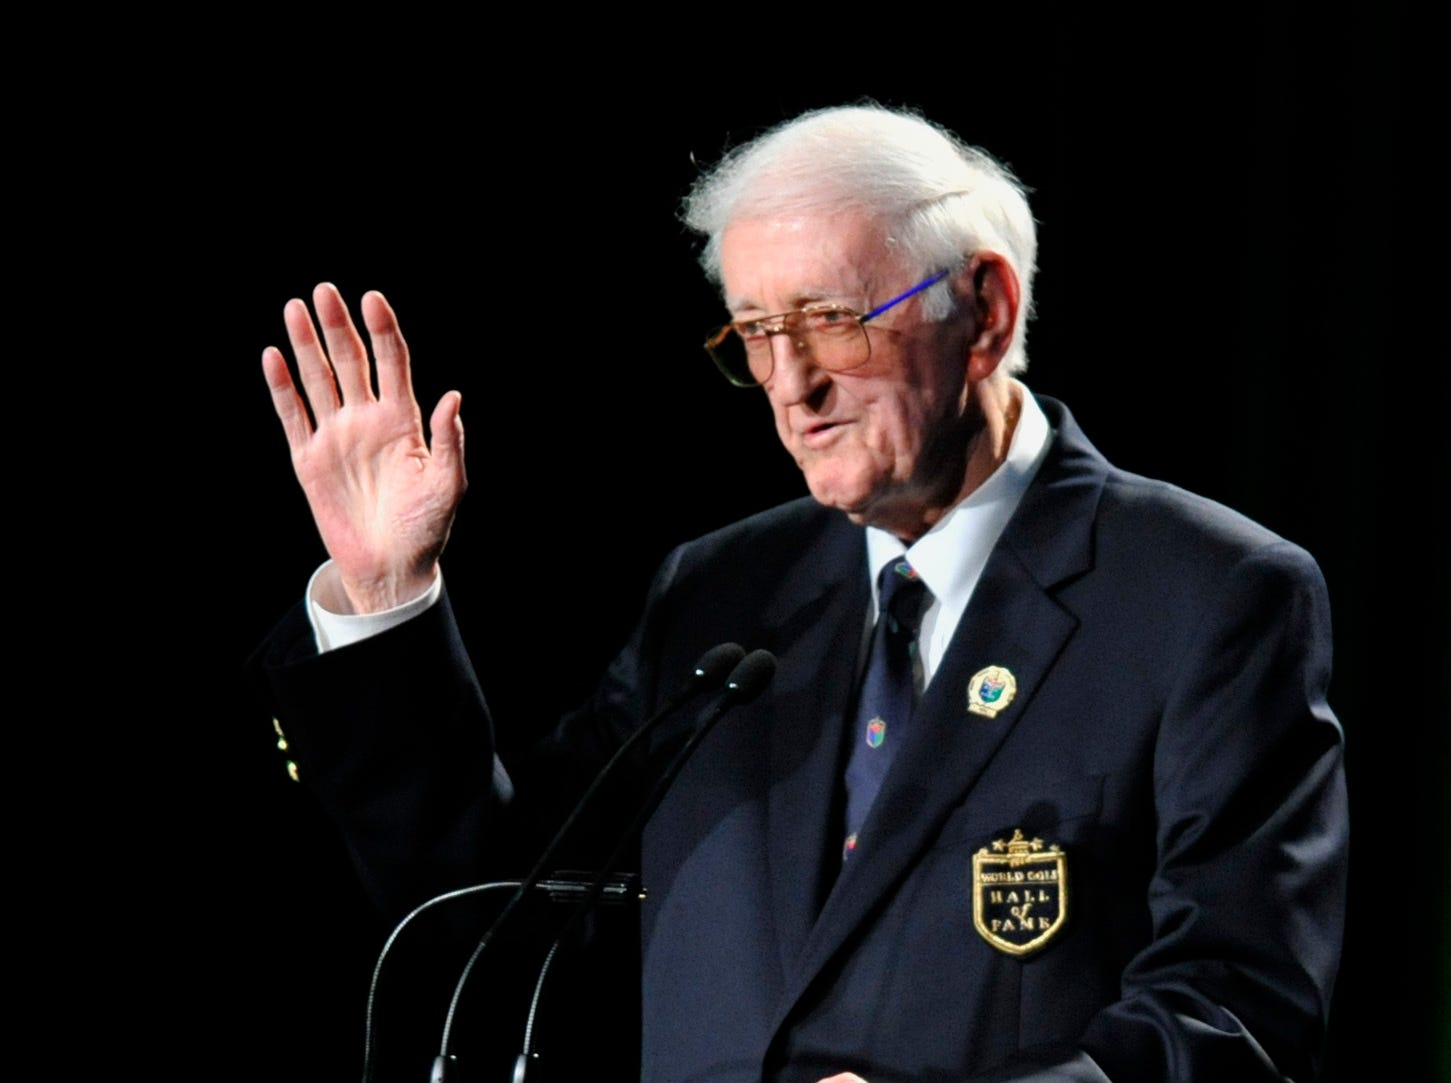 In this May 7, 2012, file photo, sports writer Dan Jenkins speaks after receiving the lifetime achievement award during the World Golf Hall of Fame inductions at World Golf Village in St. Augustine, Fla. Jenkins, the sports writing great and best-selling author known for his humor, has died. He was 89. TCU athletic director Jeremiah Donati confirmed Jenkins died Thursday, March 7, 2019, in his hometown of Fort Worth, Texas.